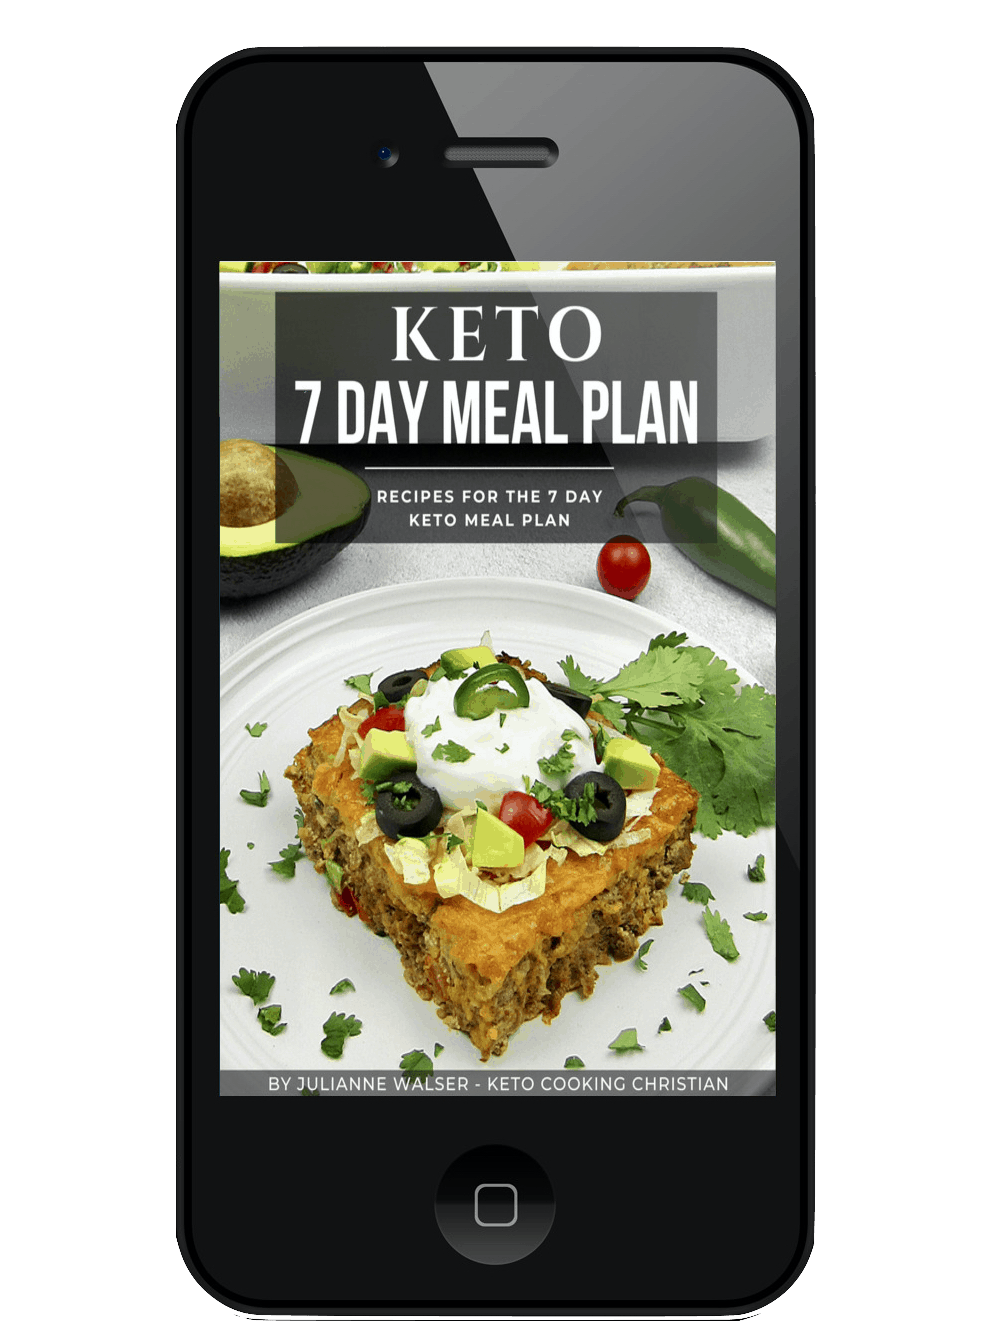 Keto 7 Day Meal Plan Recipes on Mobile device